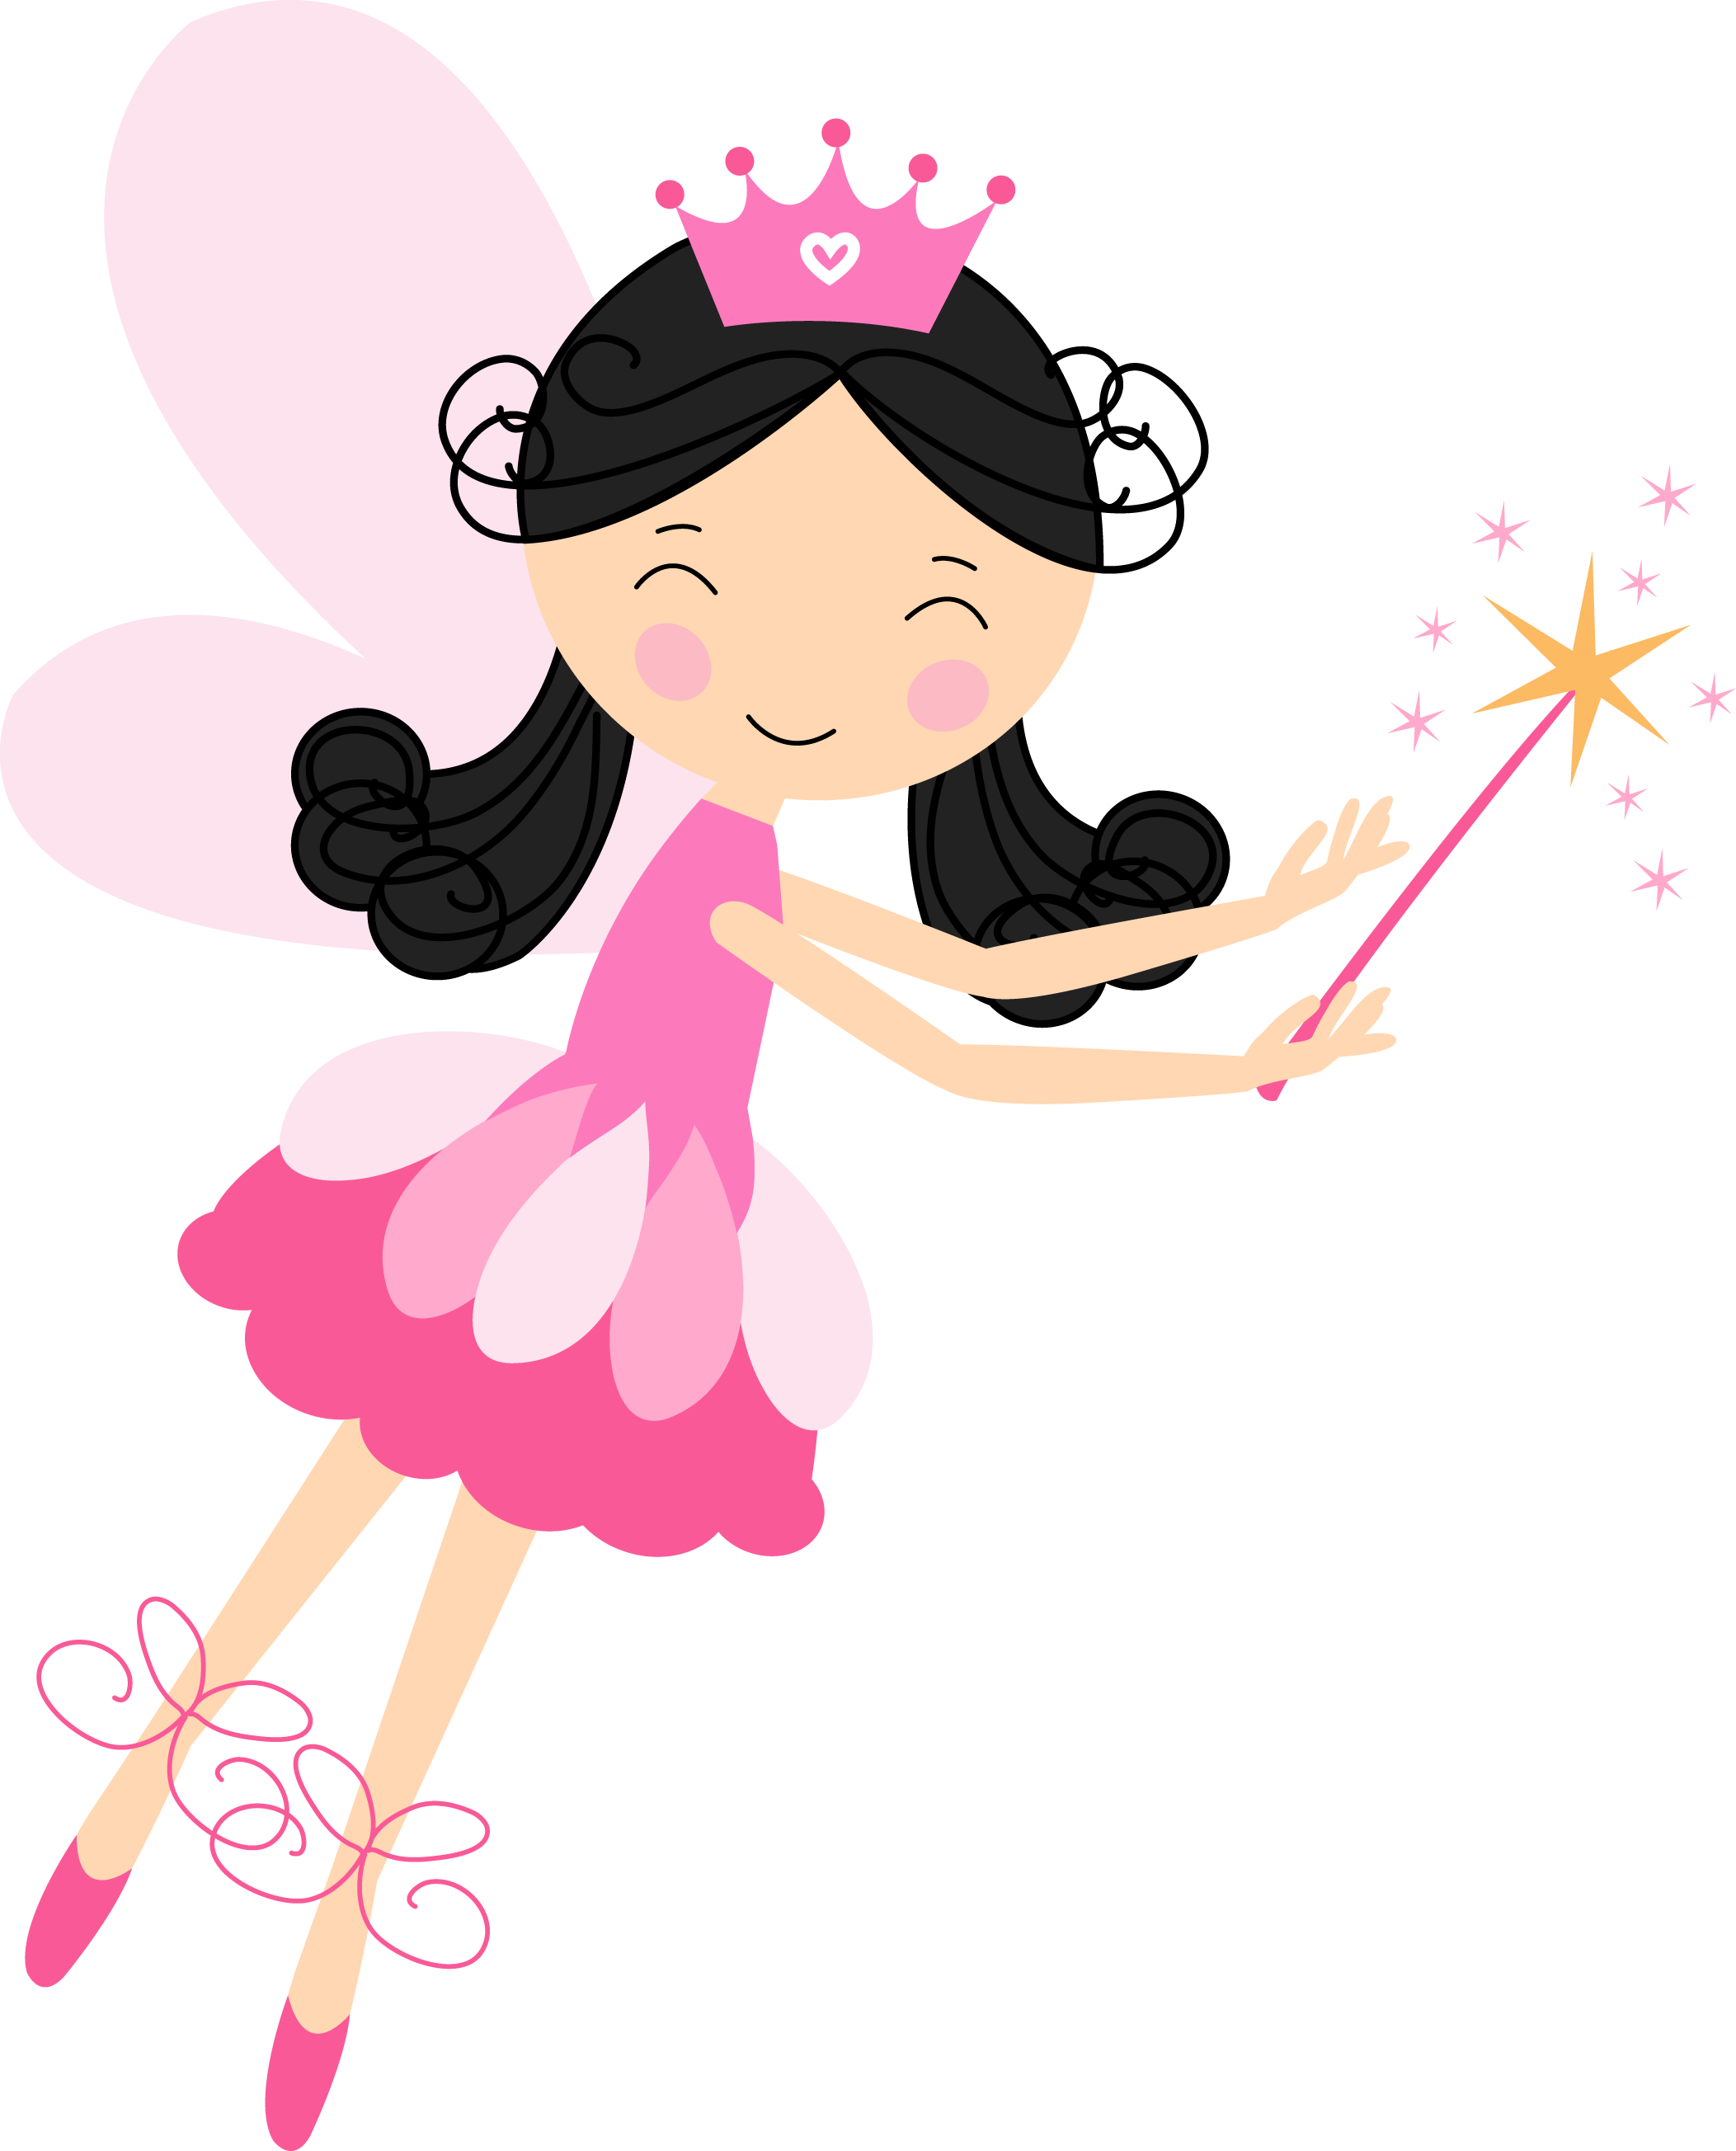 February clipart fairy, February fairy Transparent FREE for.